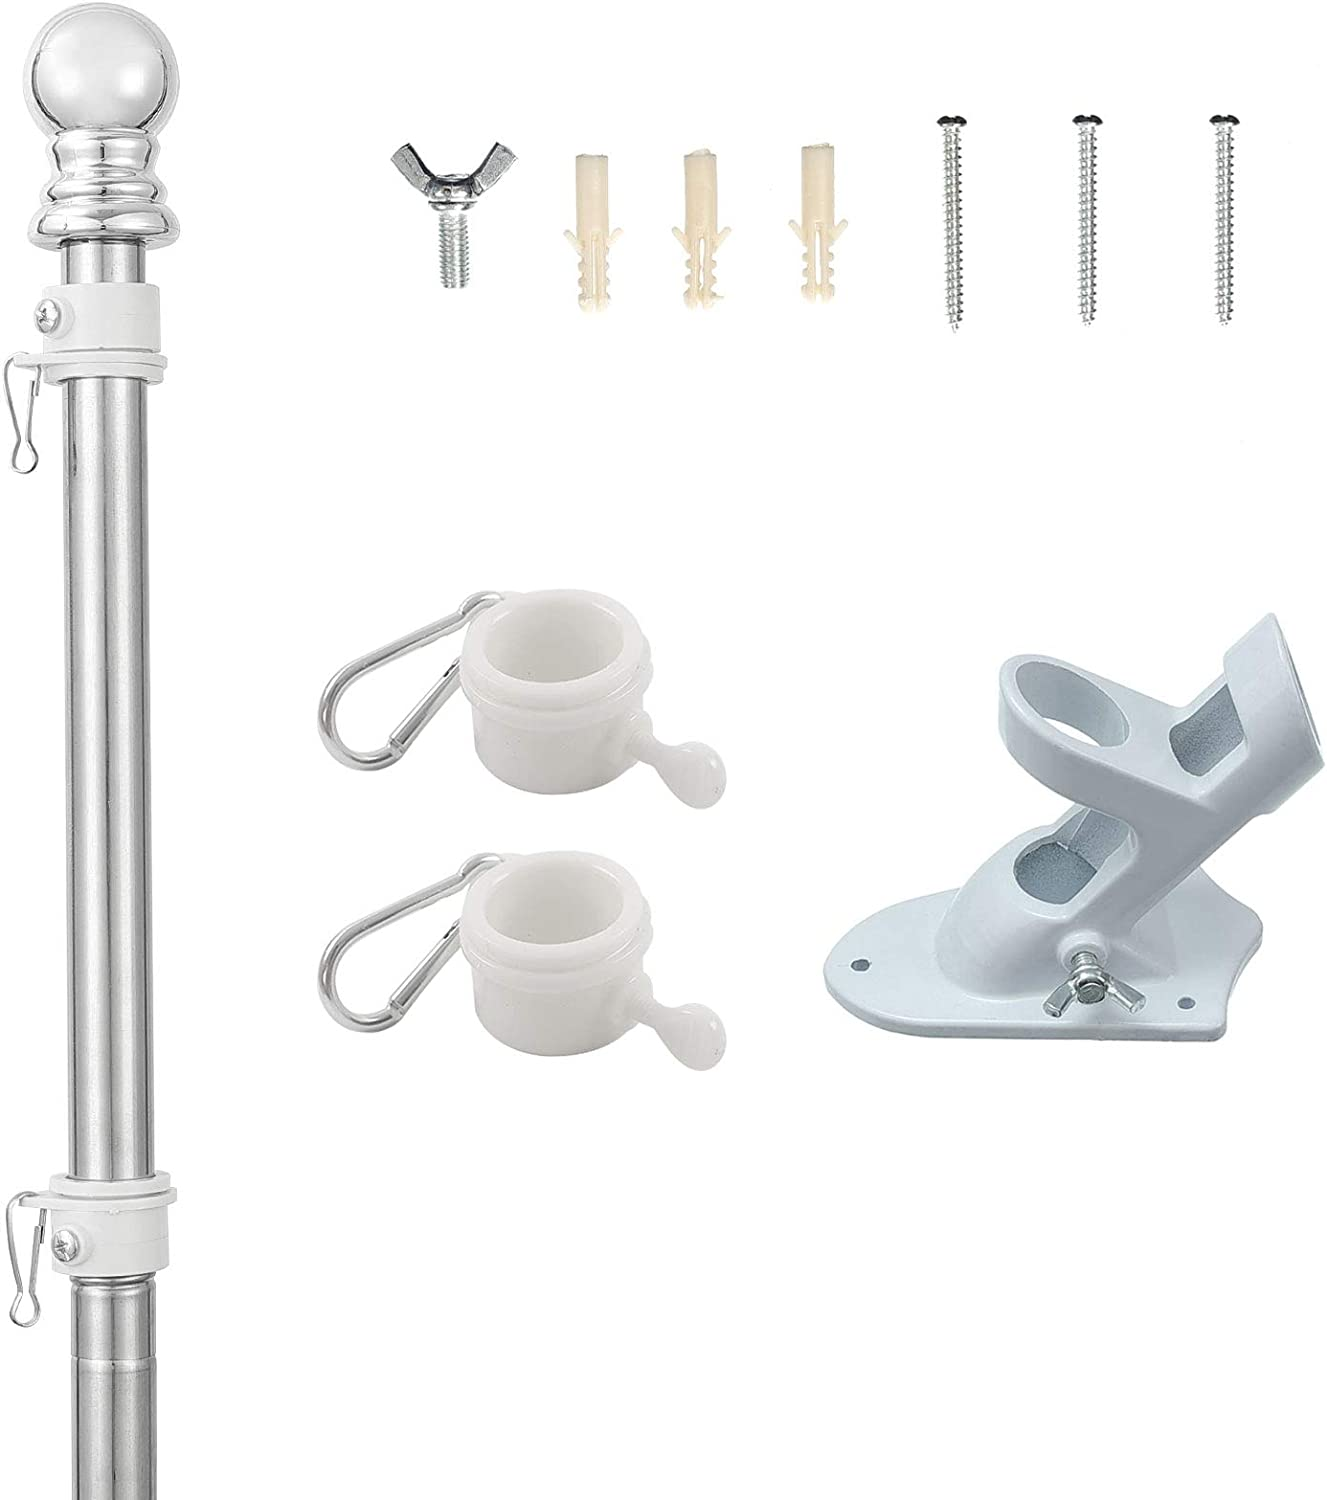 lowest price Flag Pole Kit - 5FT Adjustable for Limited price R American Flagpole